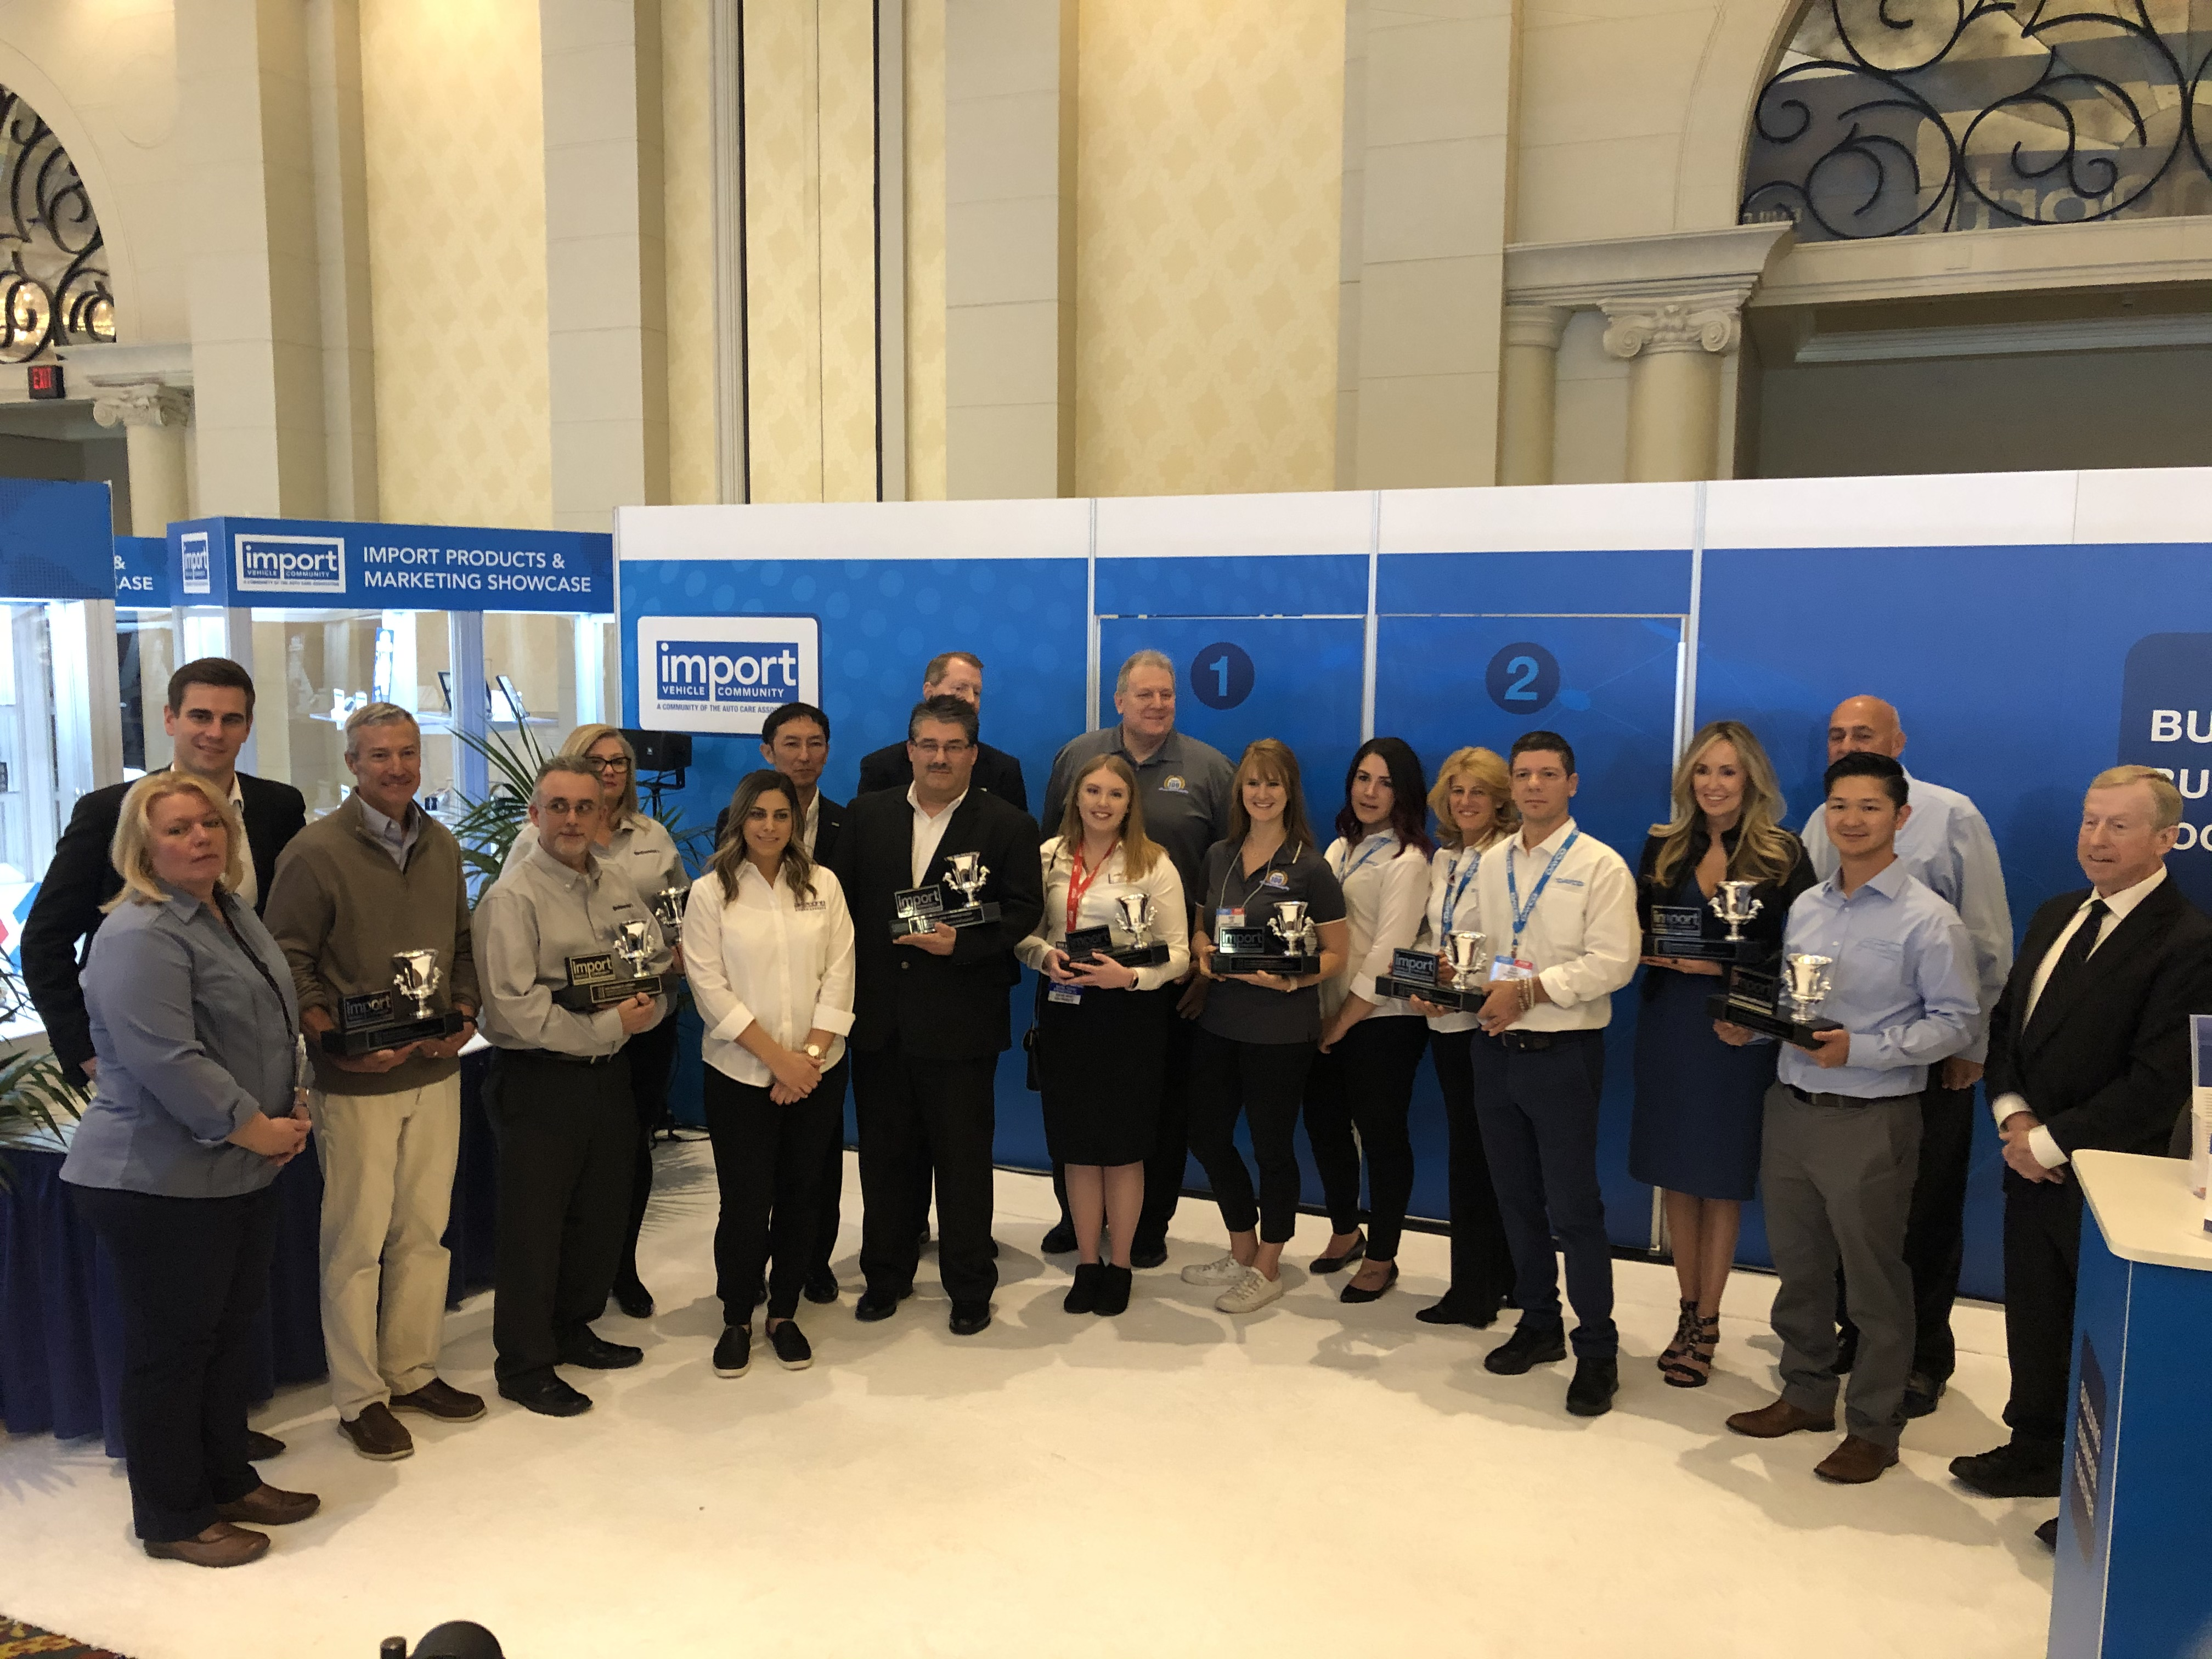 AAPEX product award winners